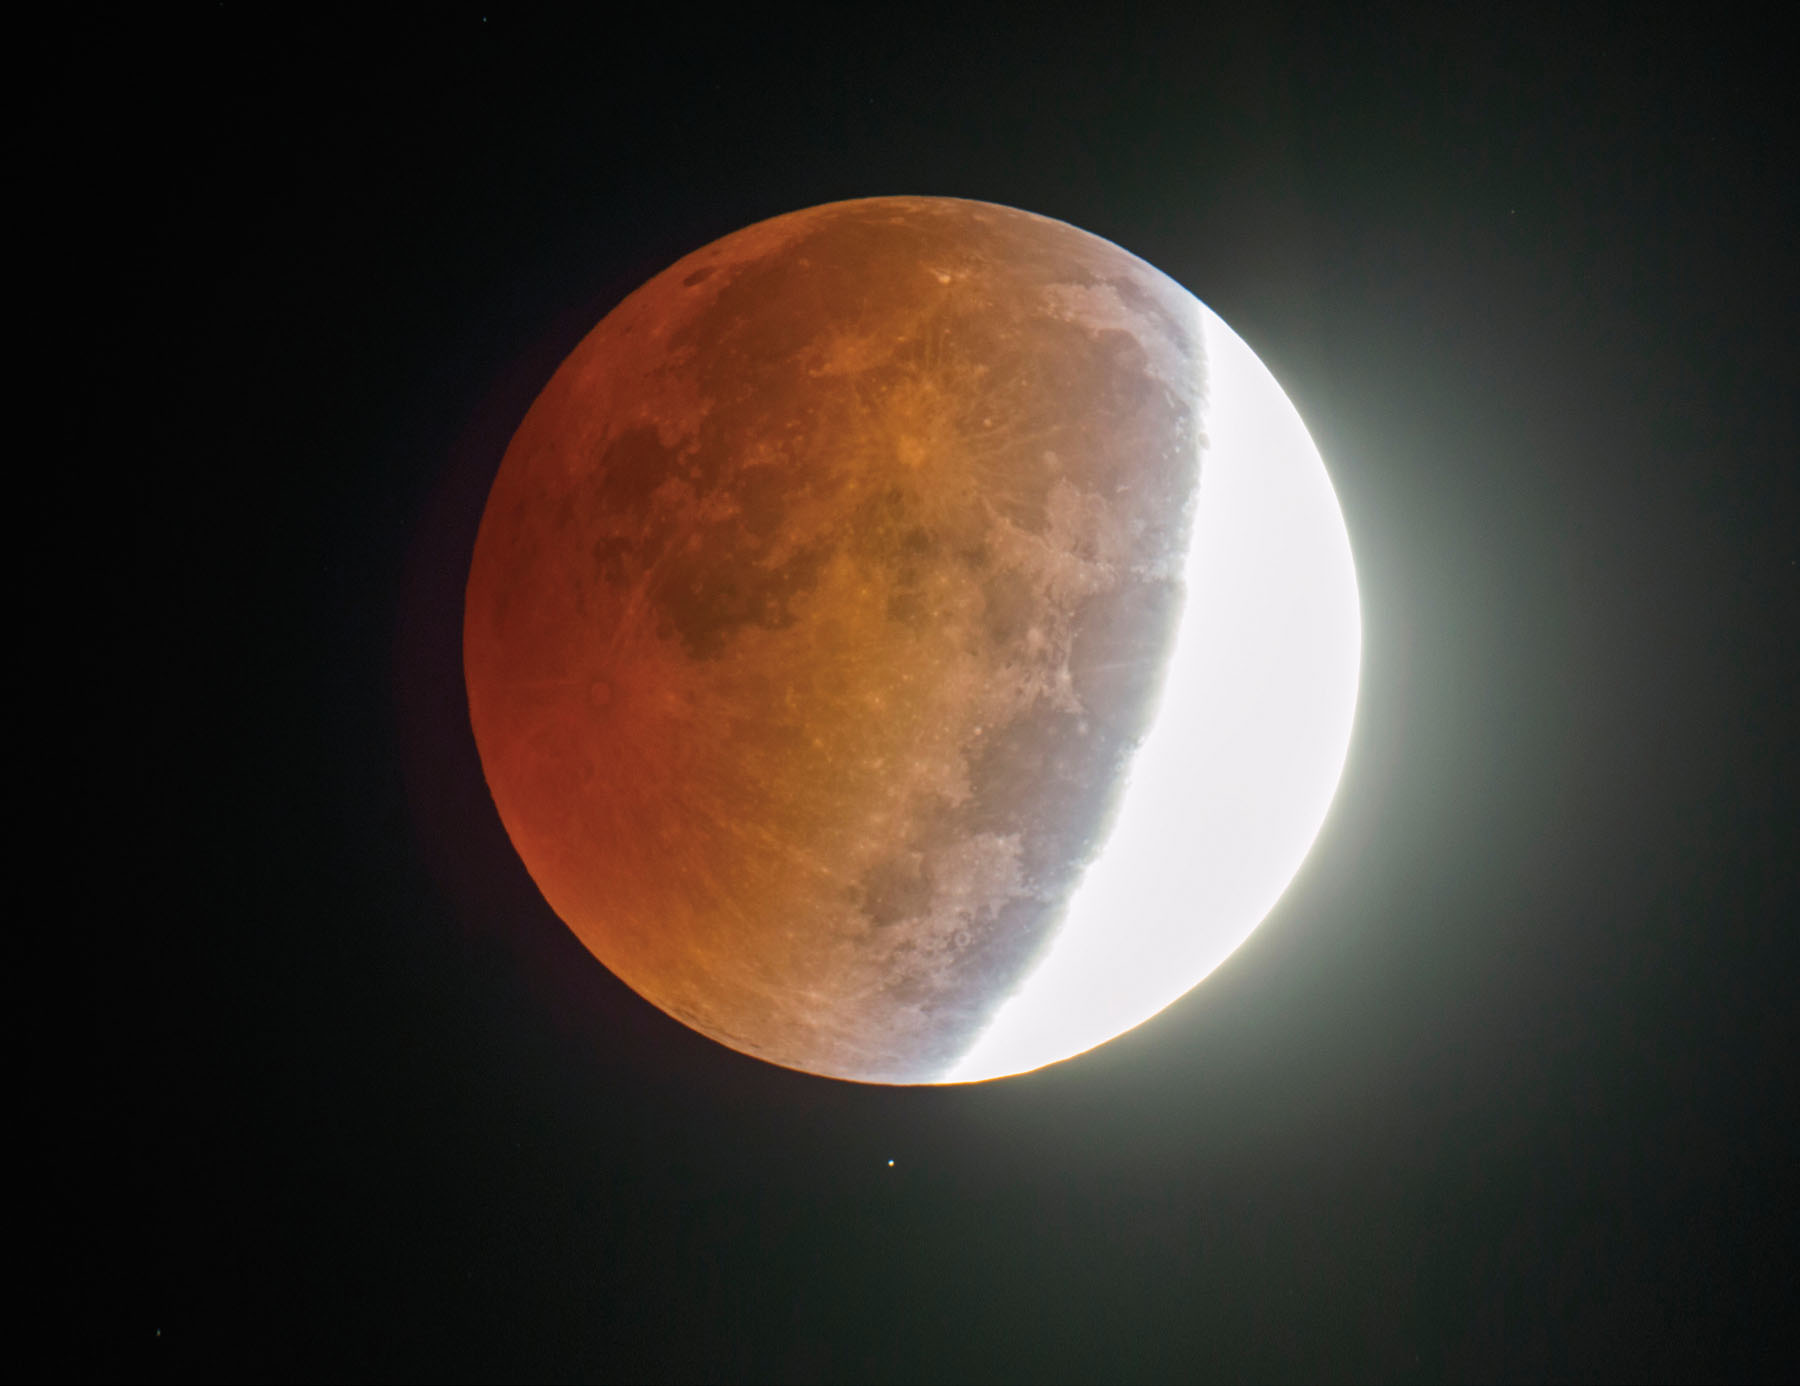 How To Watch The Lunar Eclipse Safely And When? Things You Must Keep In Mind